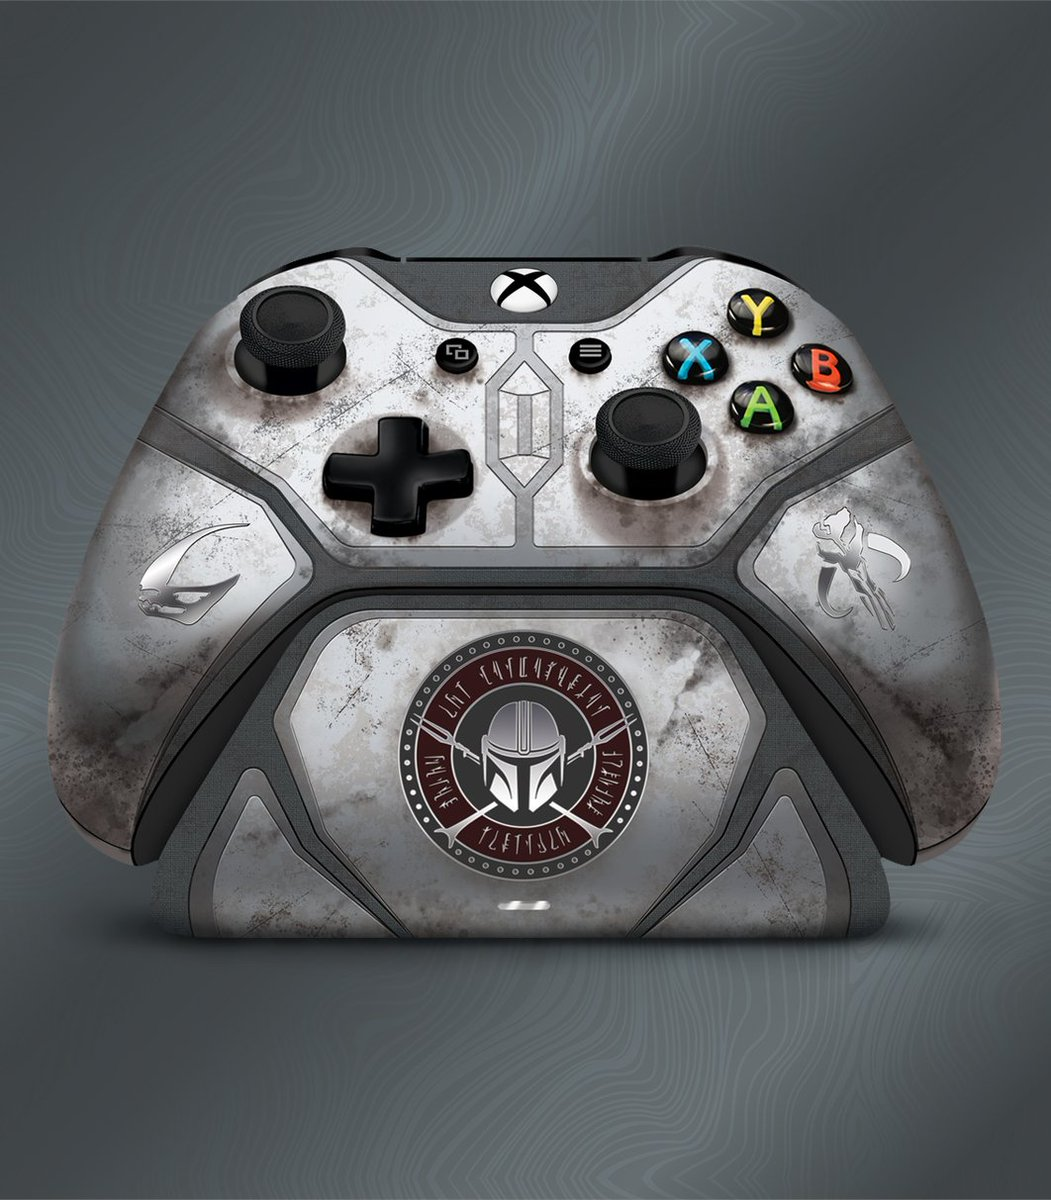 The Mandalor is not a race, it's a creed and well, it's also now a controller.  https://t.co/9AprFvYuyn https://t.co/lTN3aSO9sC